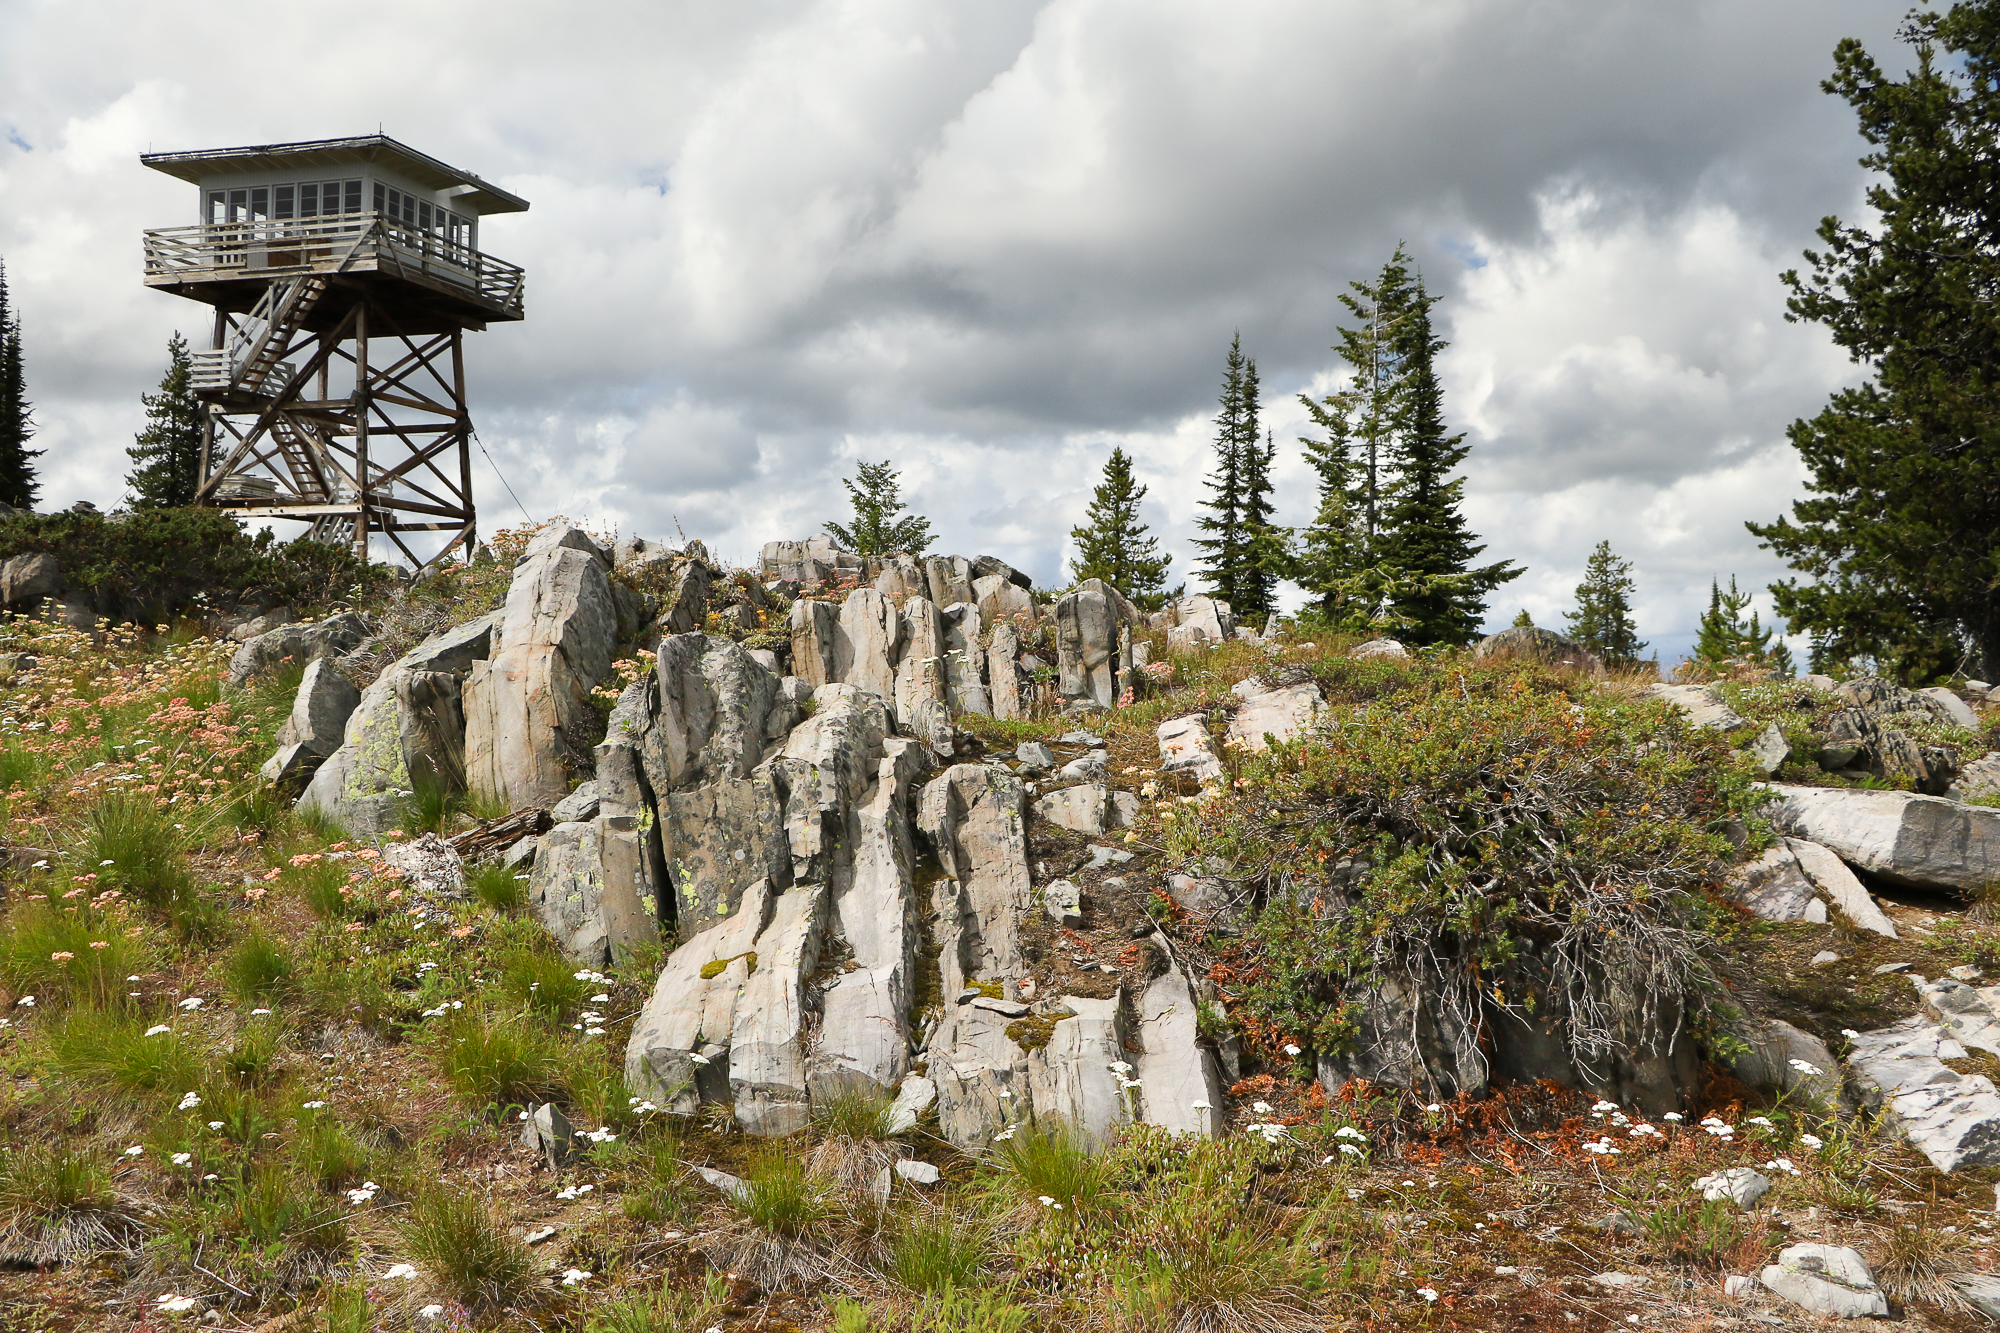 Garver Peak Lookout Tower